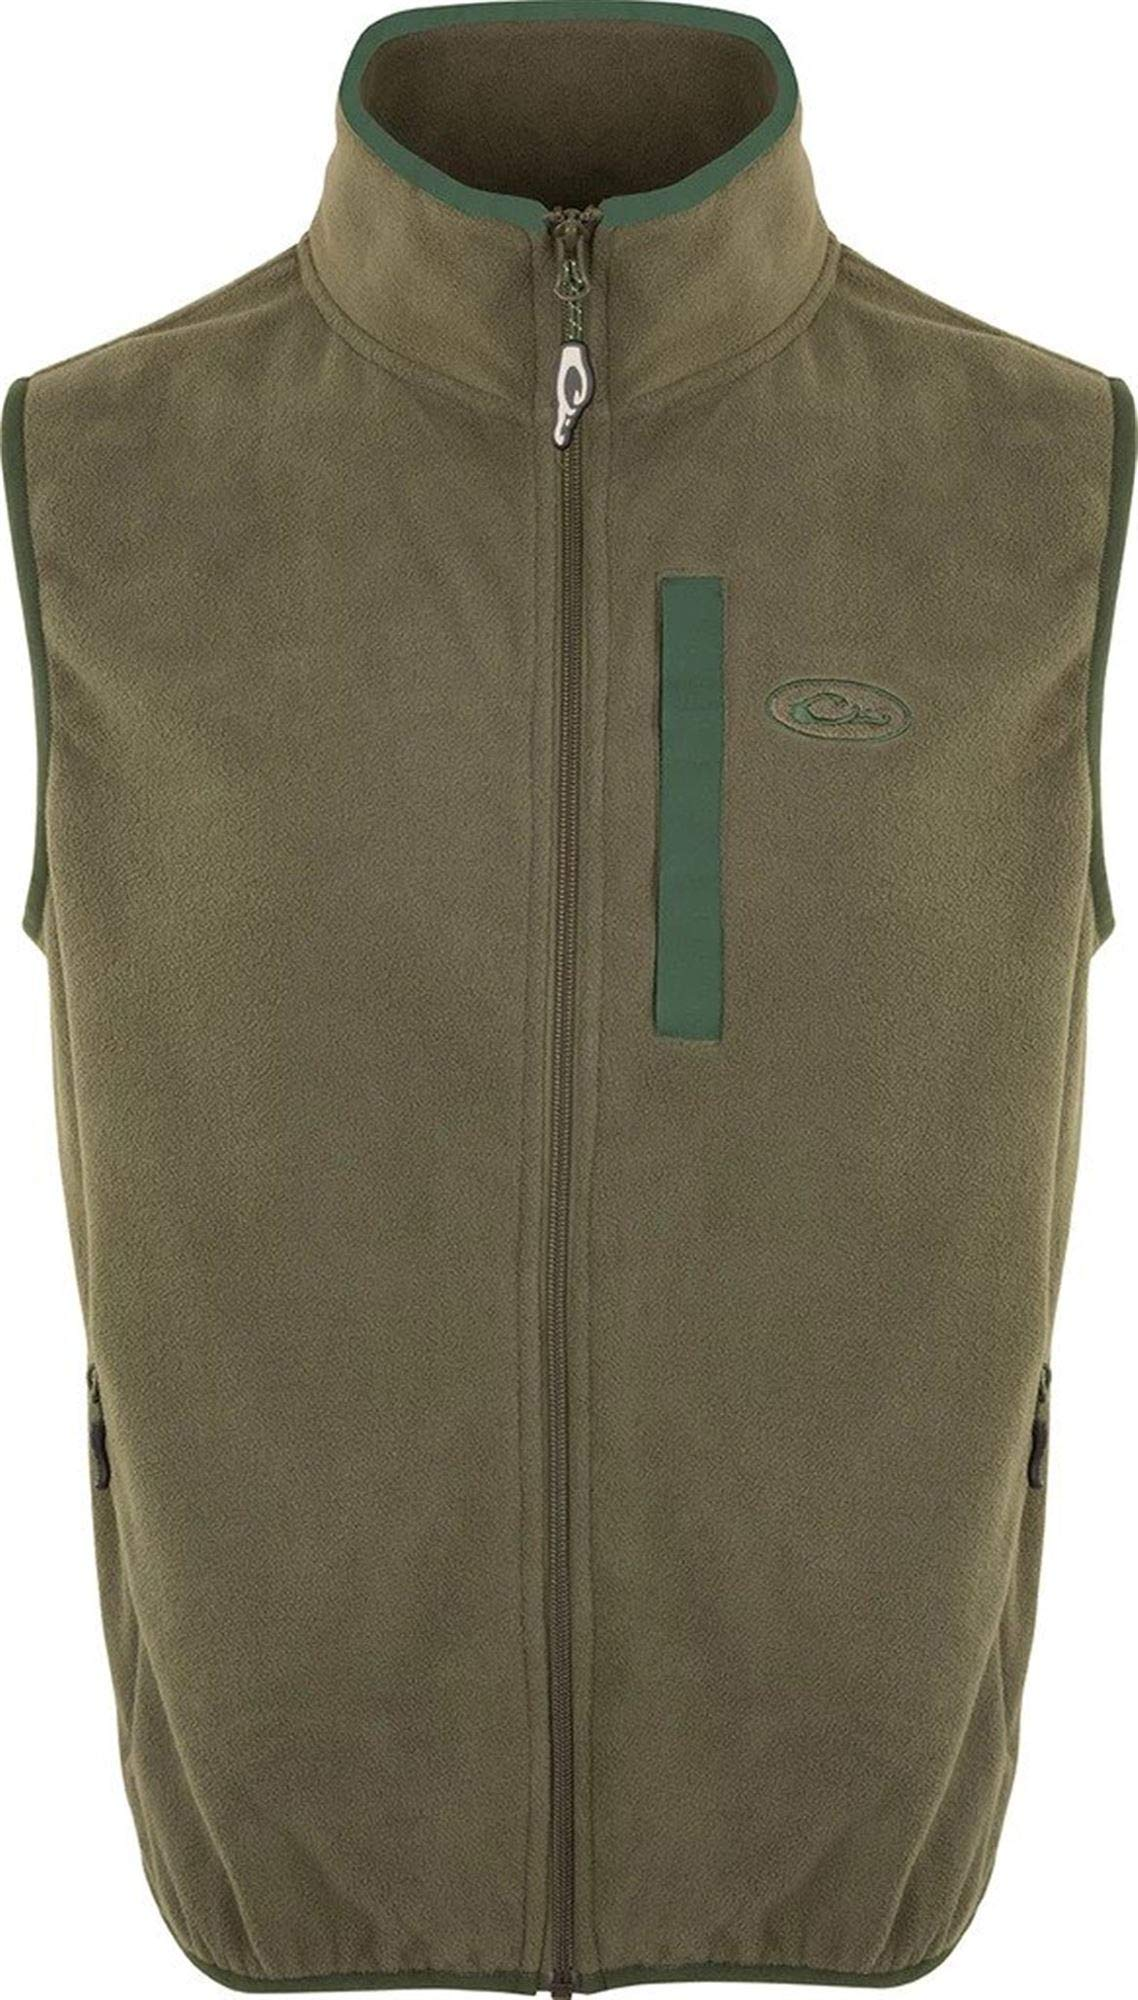 Drake Youth Camp Fleece Vest Olive/Dark Green 14 by Drake